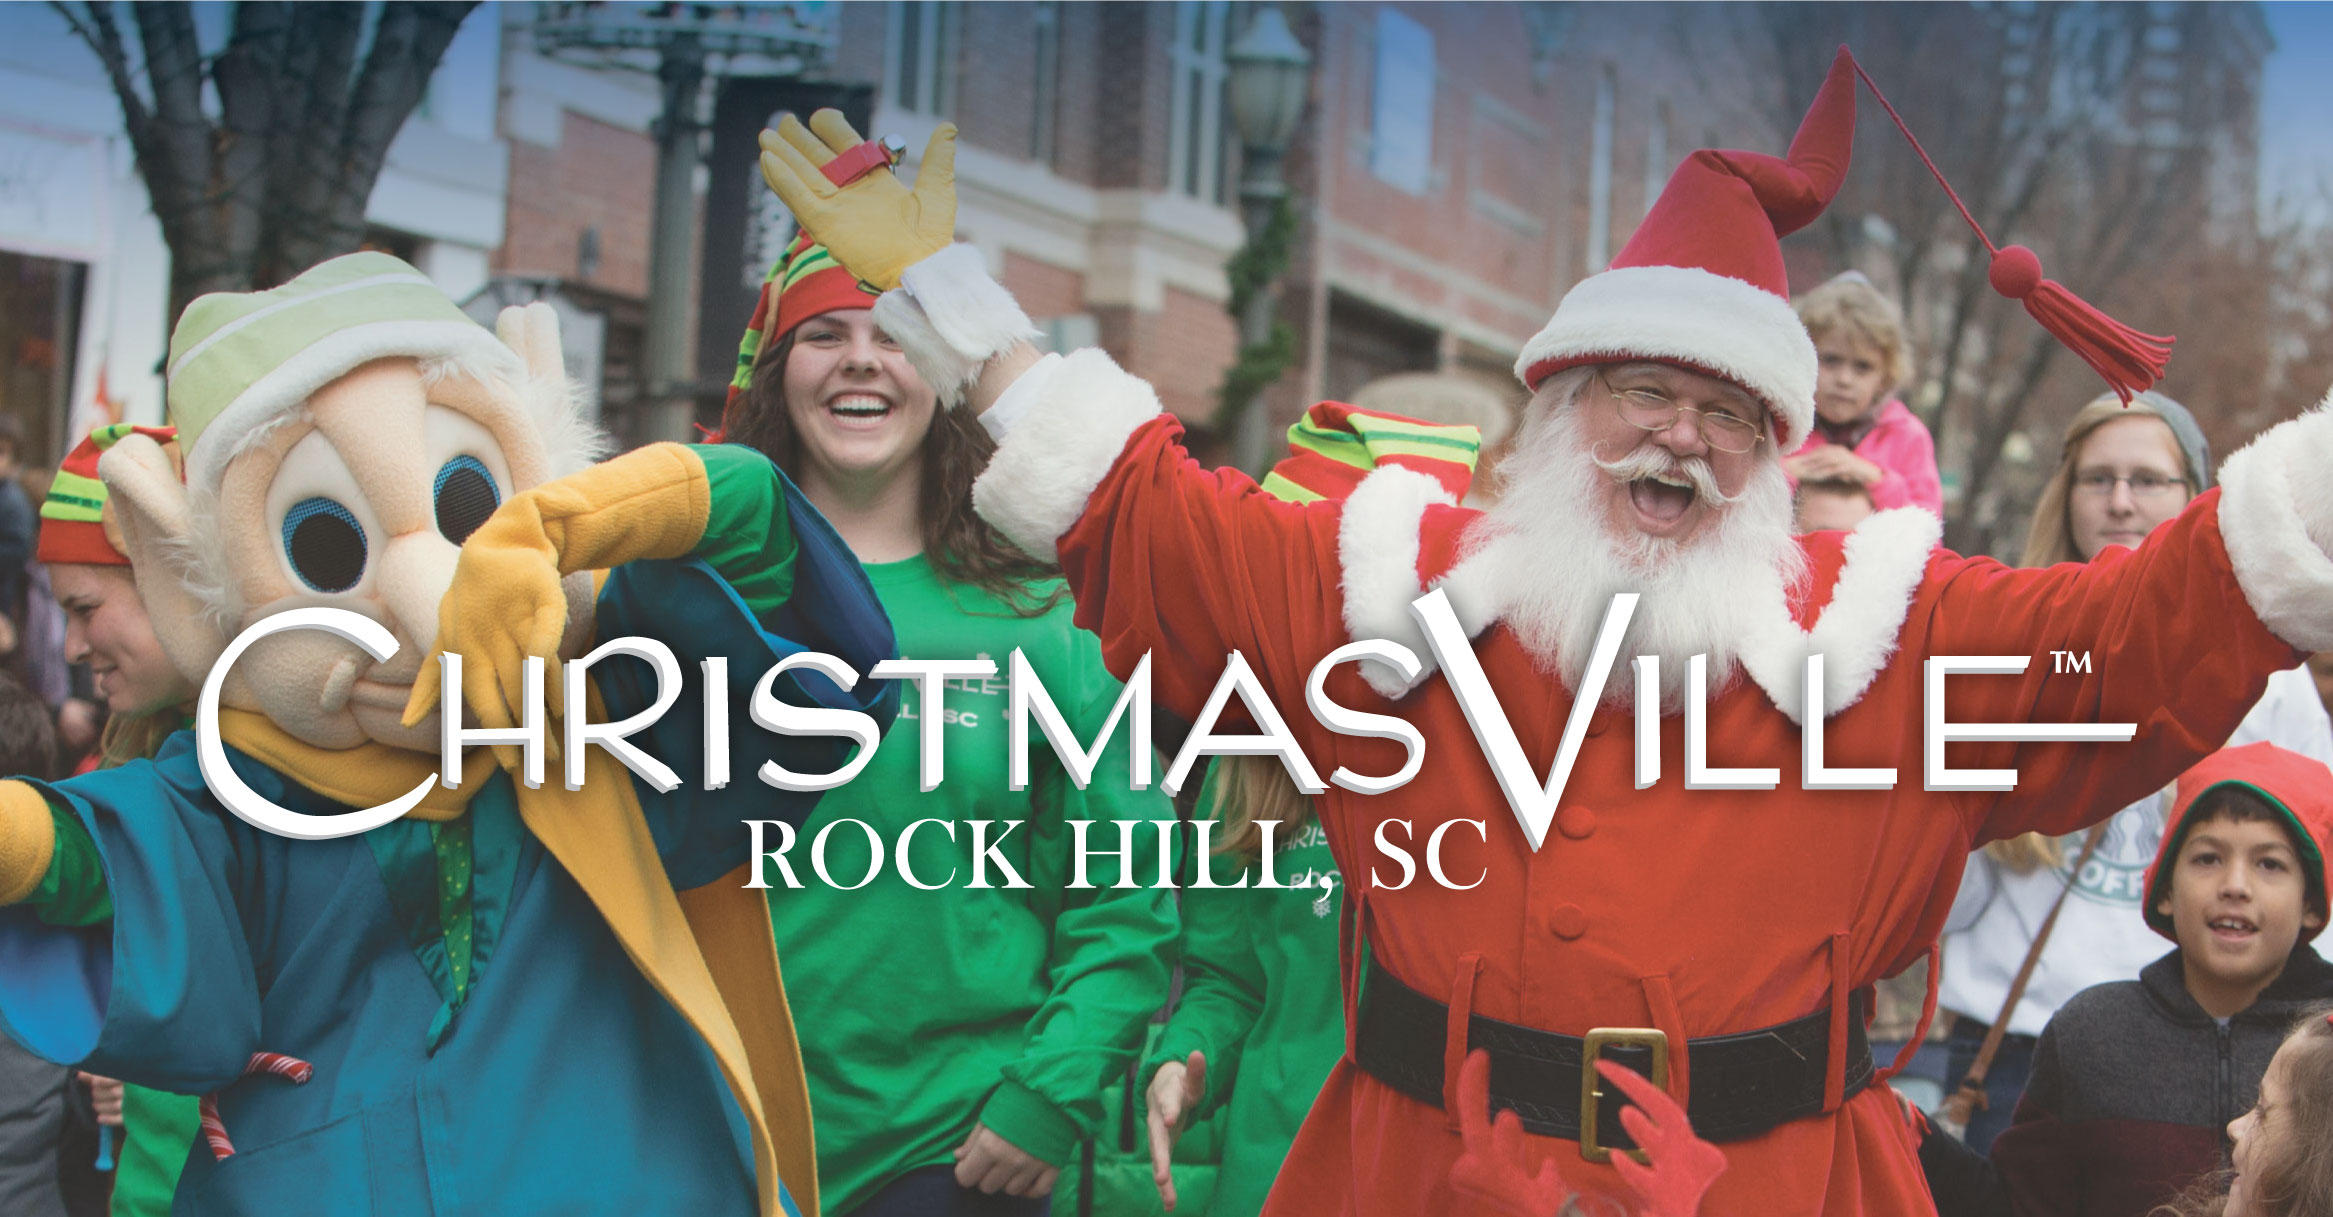 2018 rock hill christmas clipart Transparent pictures on F.